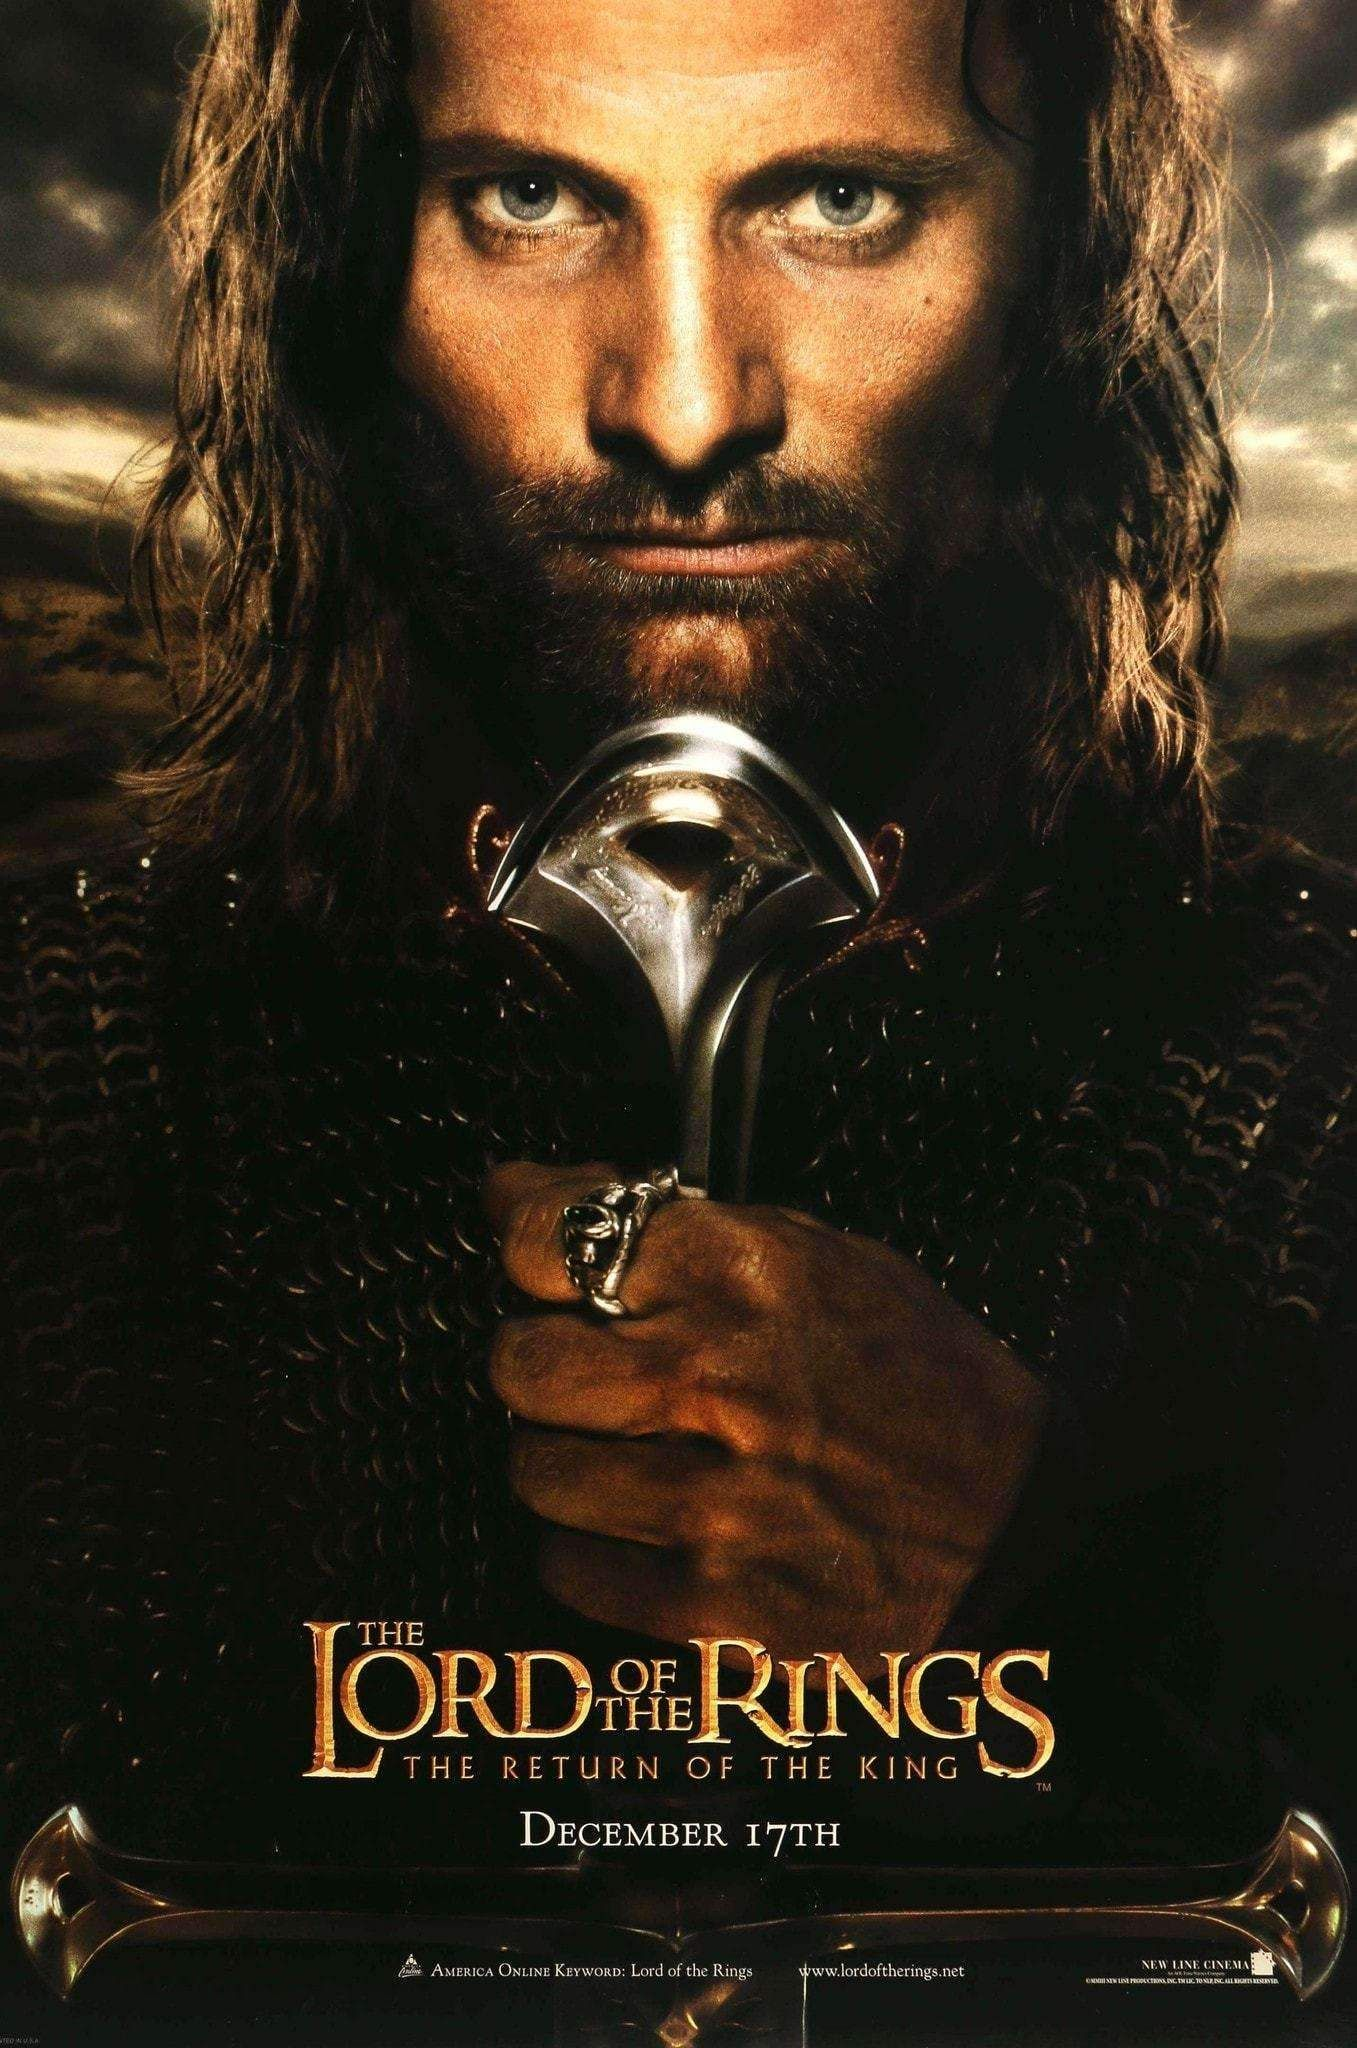 Lord Of The Rings The Return Of The King 2003 Lord Of The Rings The Hobbit Favorite Movies